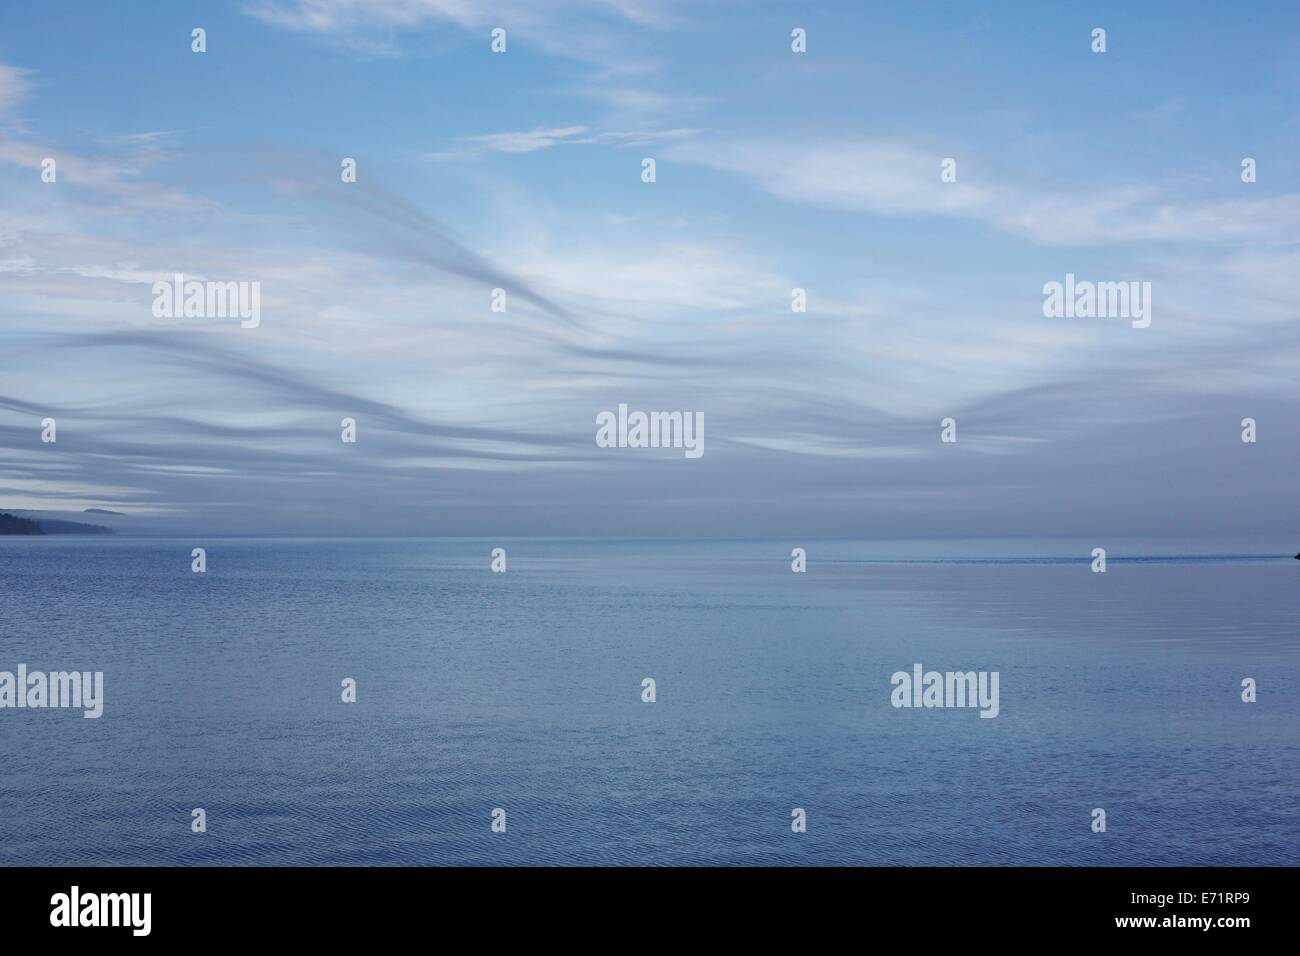 The blue sky and blue water of Lake Superior meet seamlessly. Stock Photo